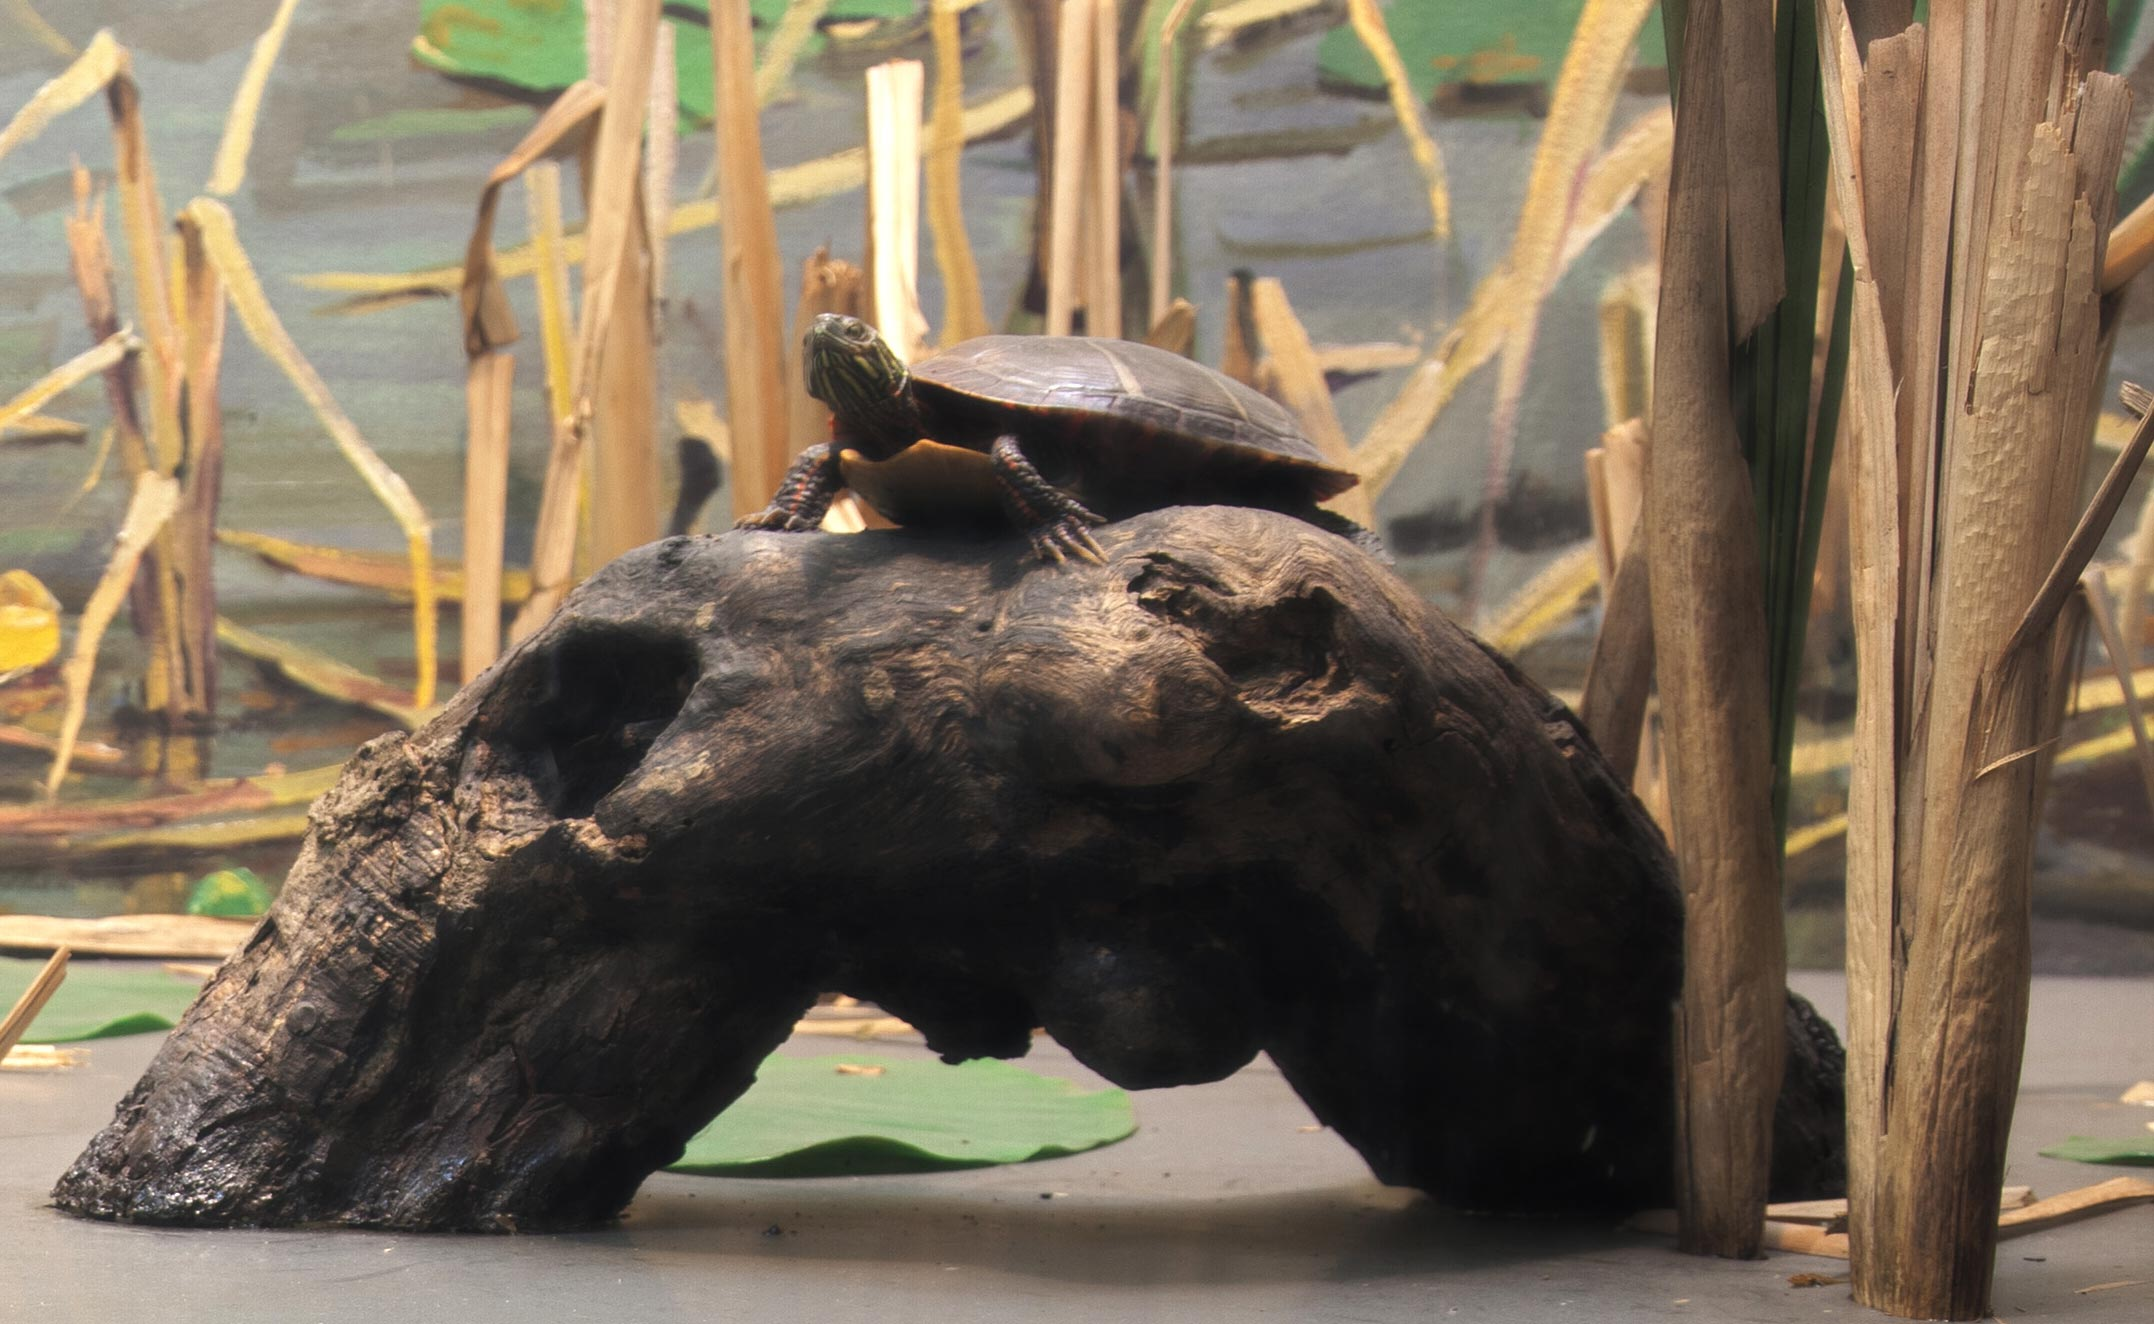 Section of a diorama showing a model of a painted turtle on a log